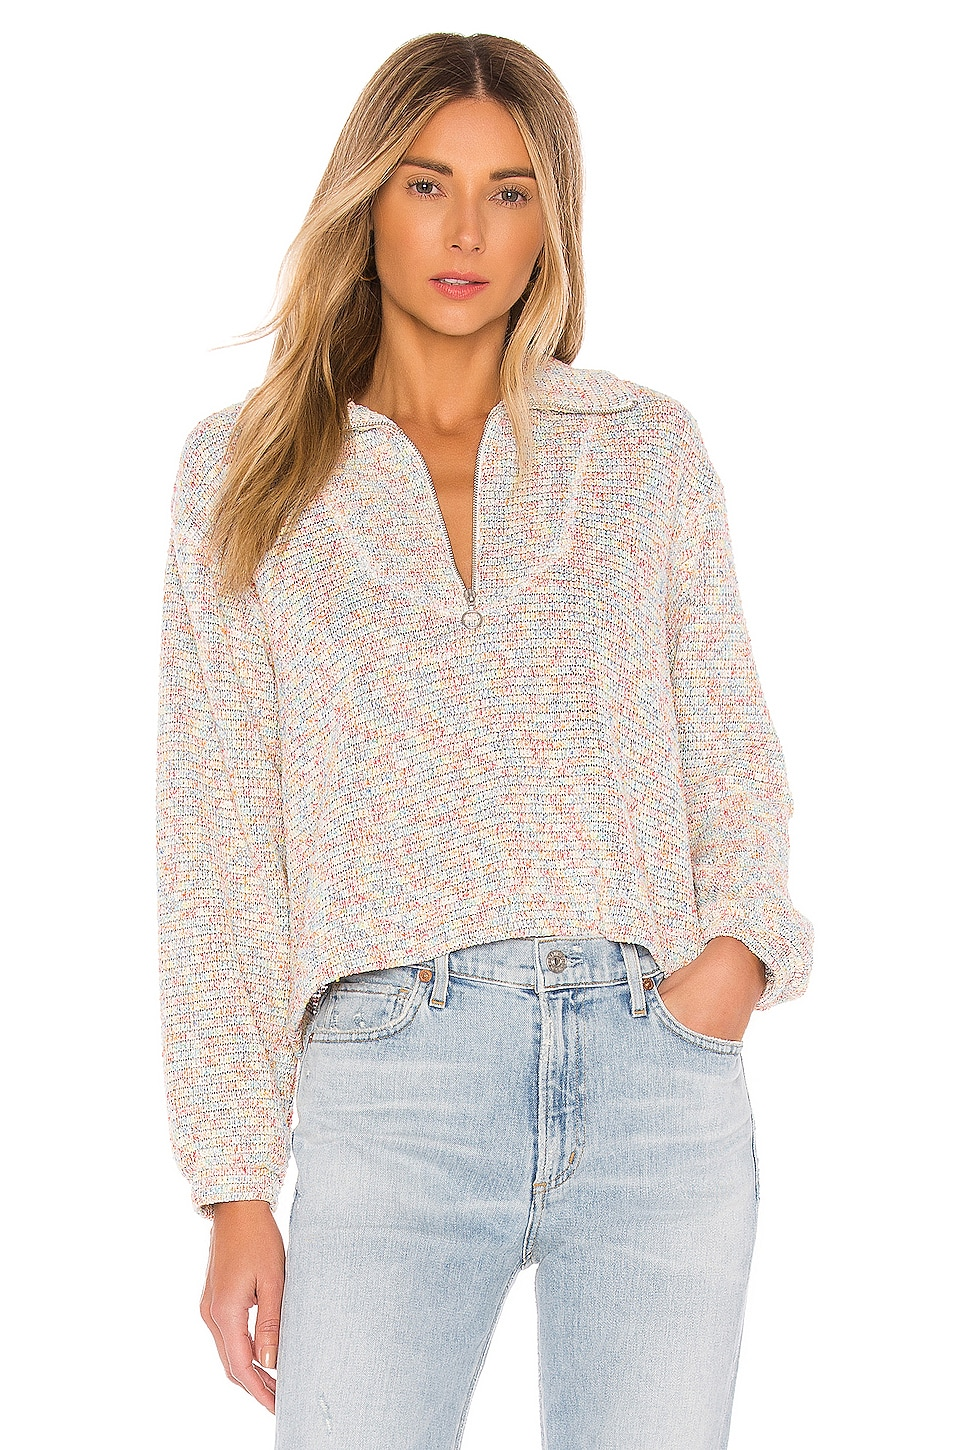 SAYLOR Lexington Sweater in Multi